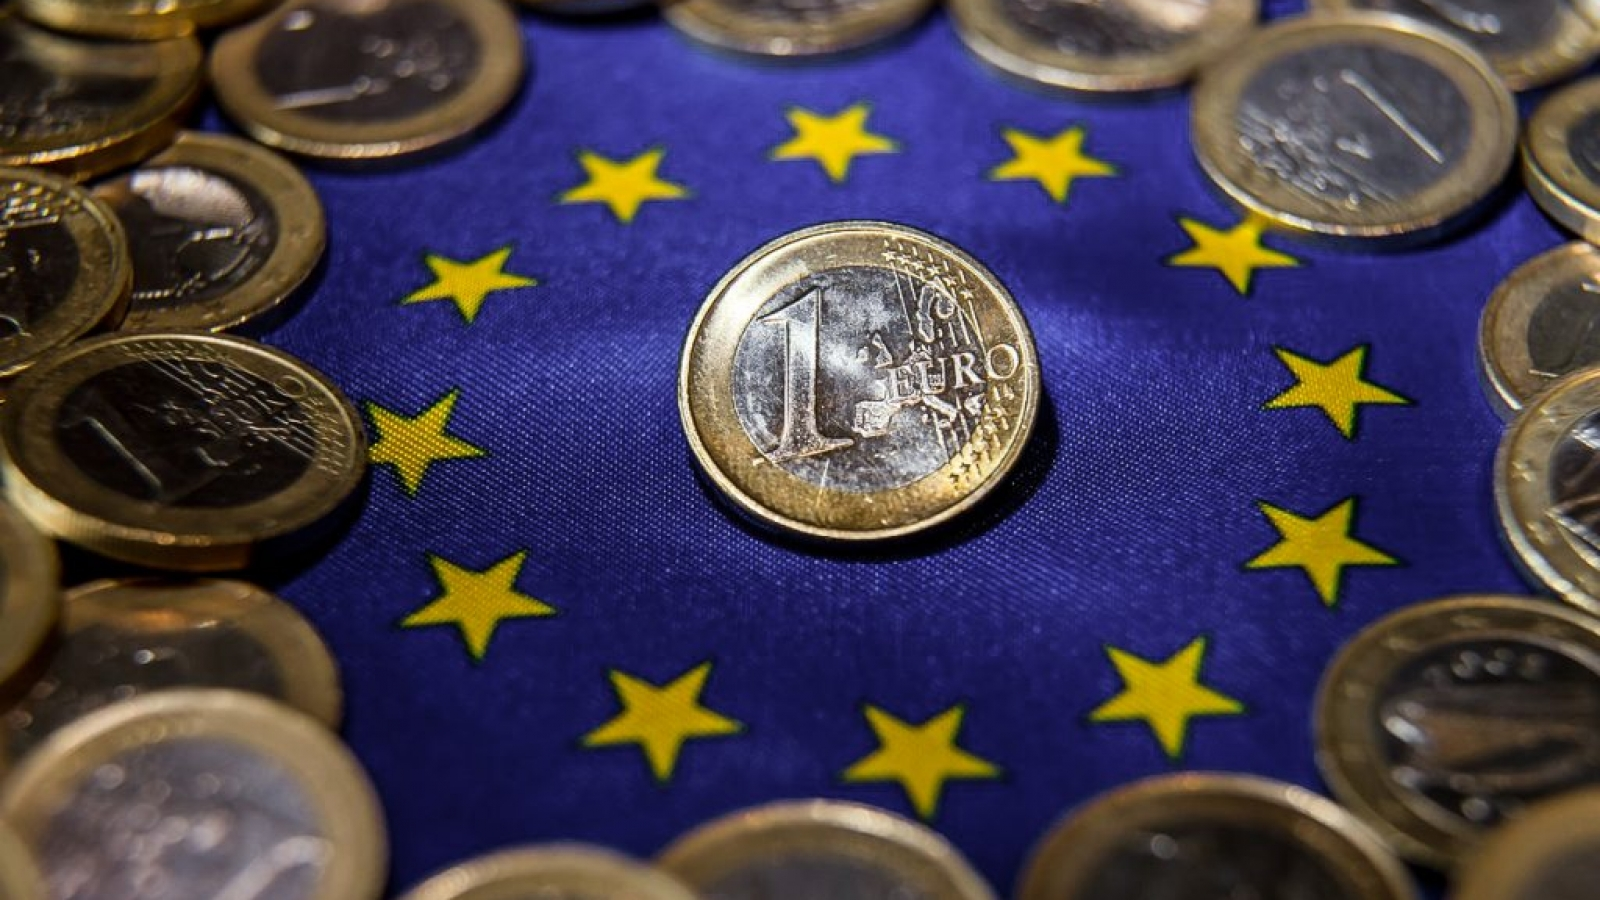 (FILES) This file photo taken on August 25, 2014 shows one-euro coins in Lille, northern France. The euro, used by nearly 340 million people each day, celebrates its 15th birthday on Sunday, January 1, 2017., Image: 309689837, License: Rights-managed, Restrictions: , Model Release: no, Credit line: Profimedia, AFP